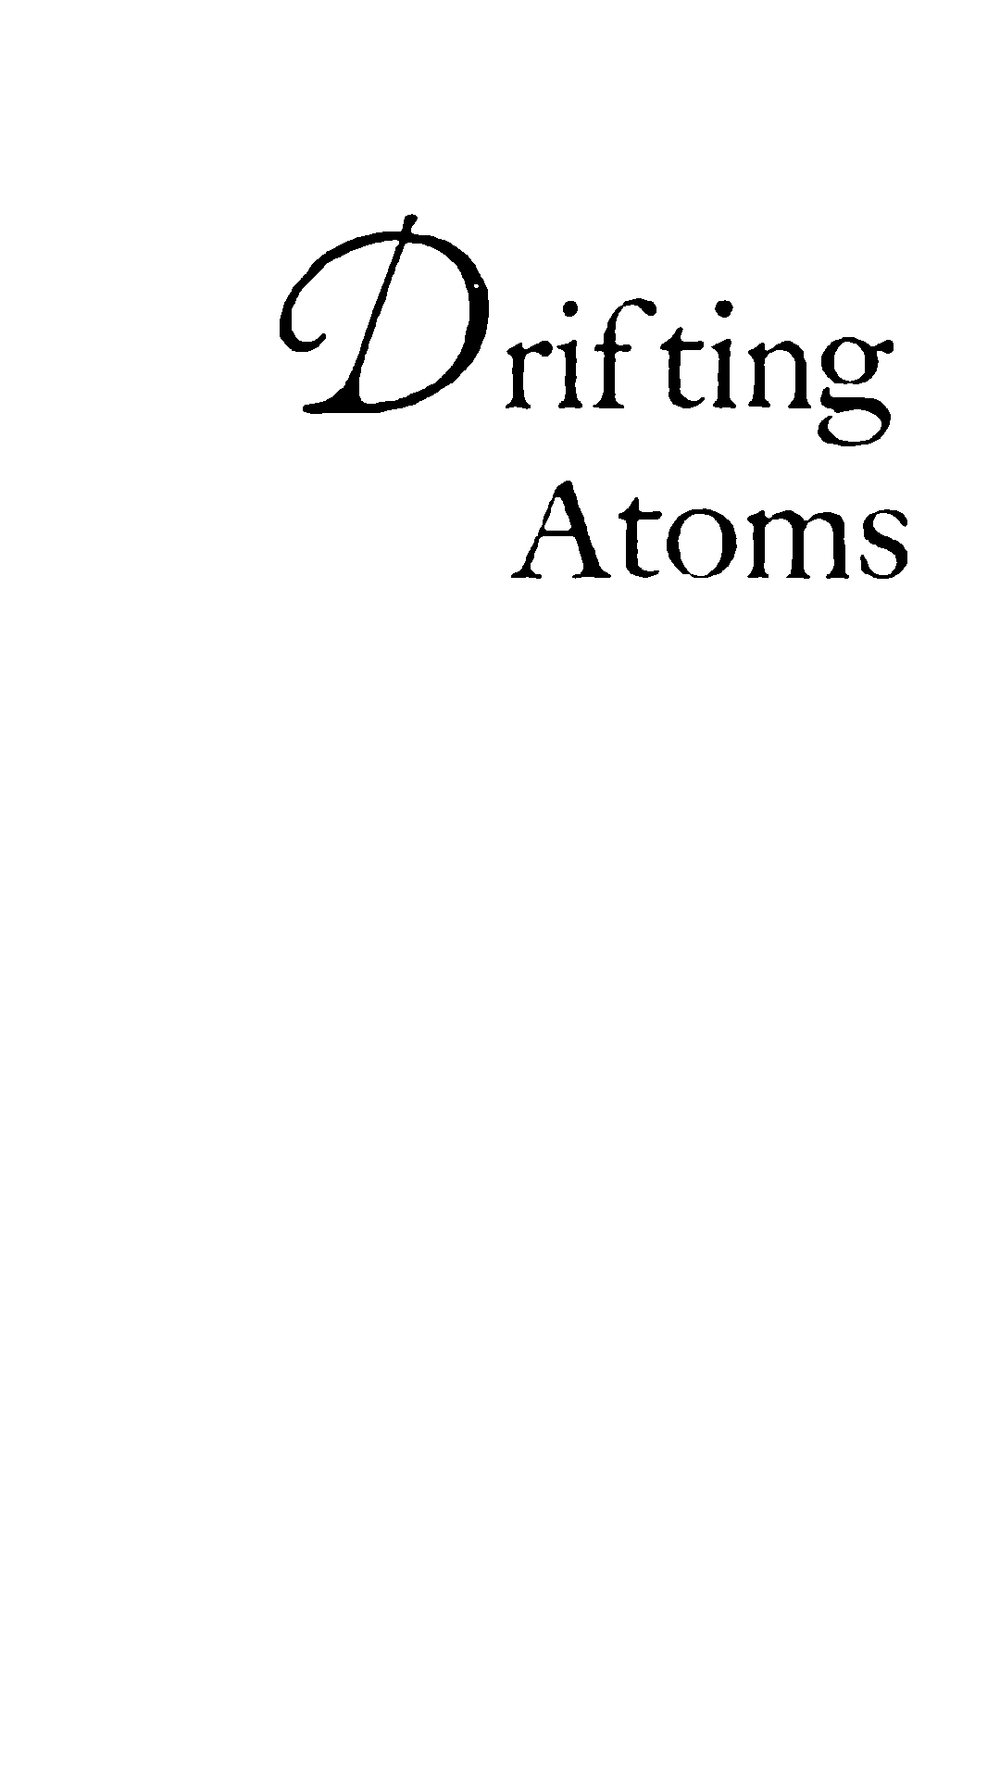 driftingatoms.jpg